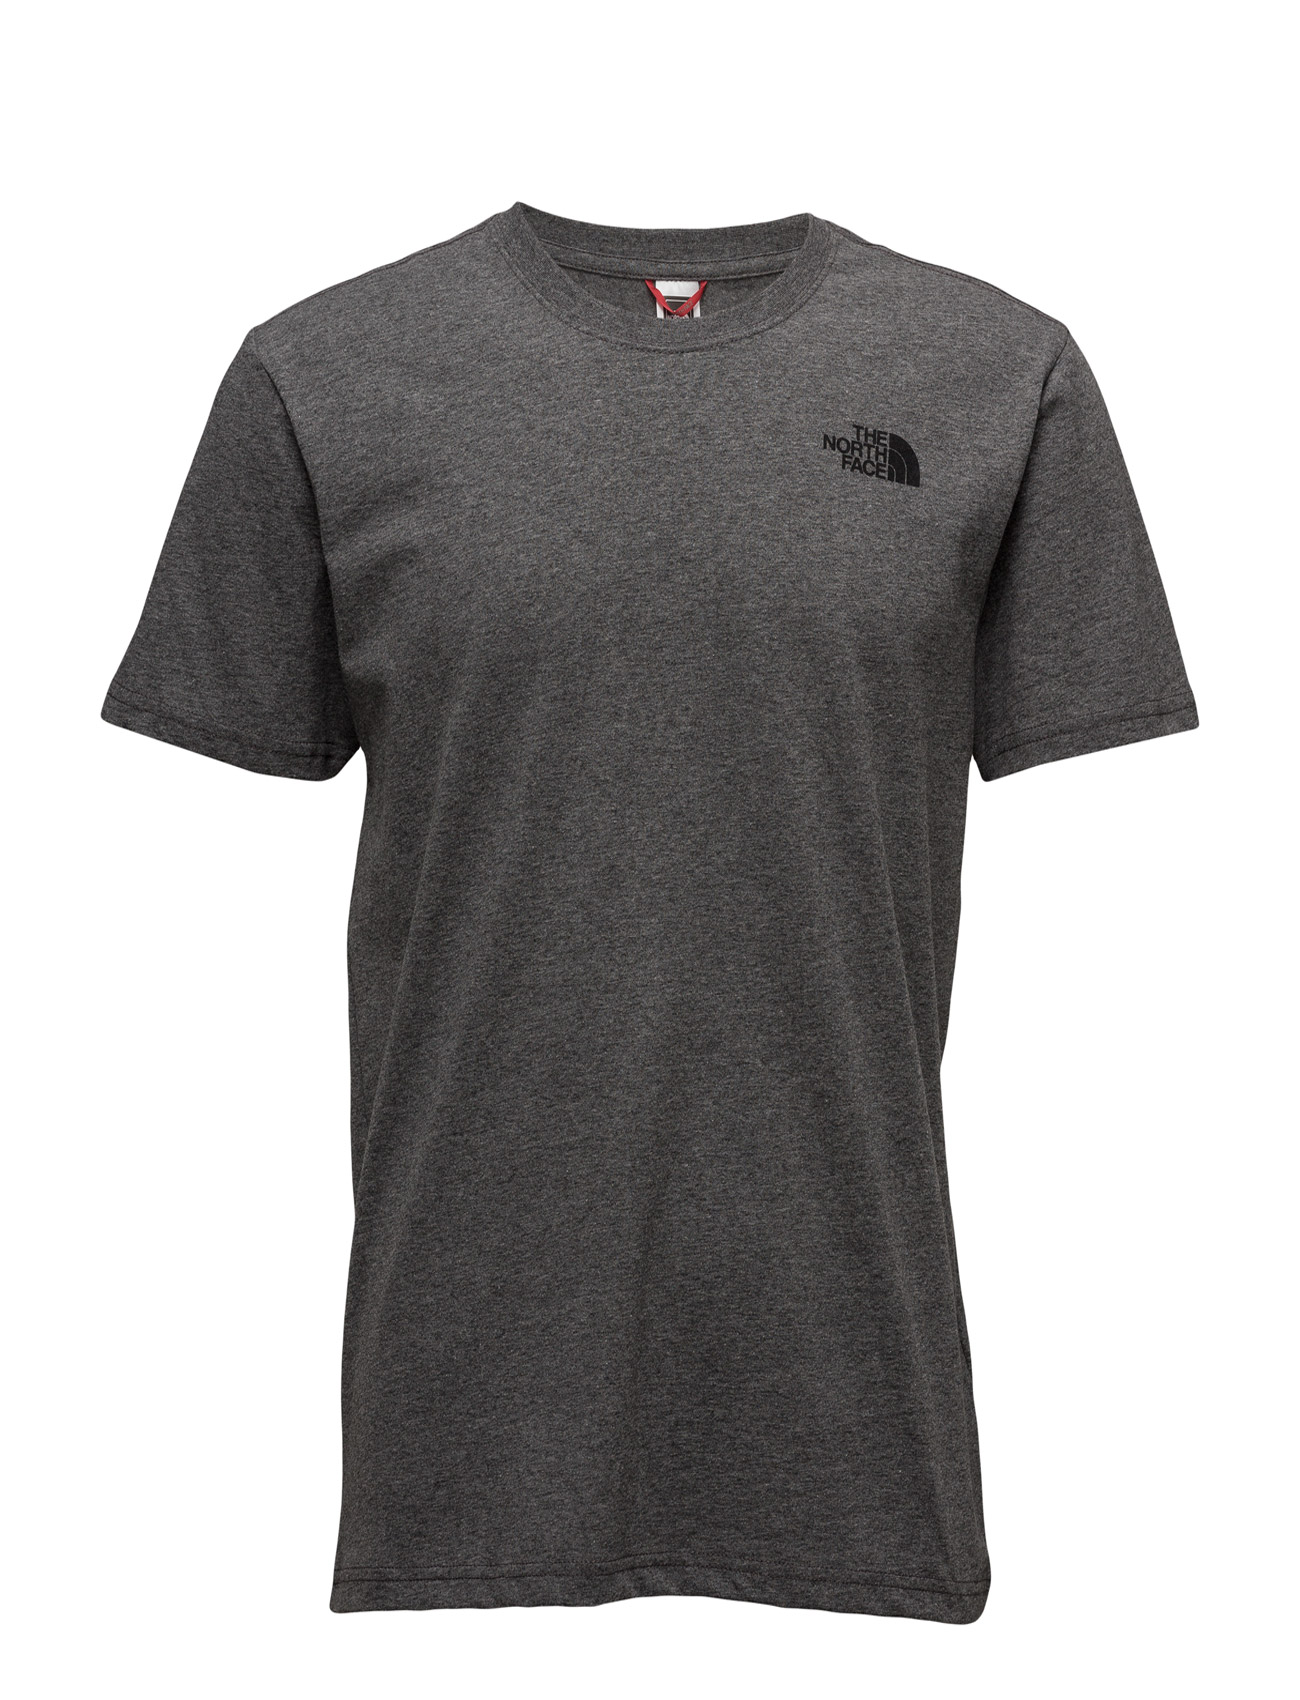 the north face – M s/s red box tee på boozt.com dk